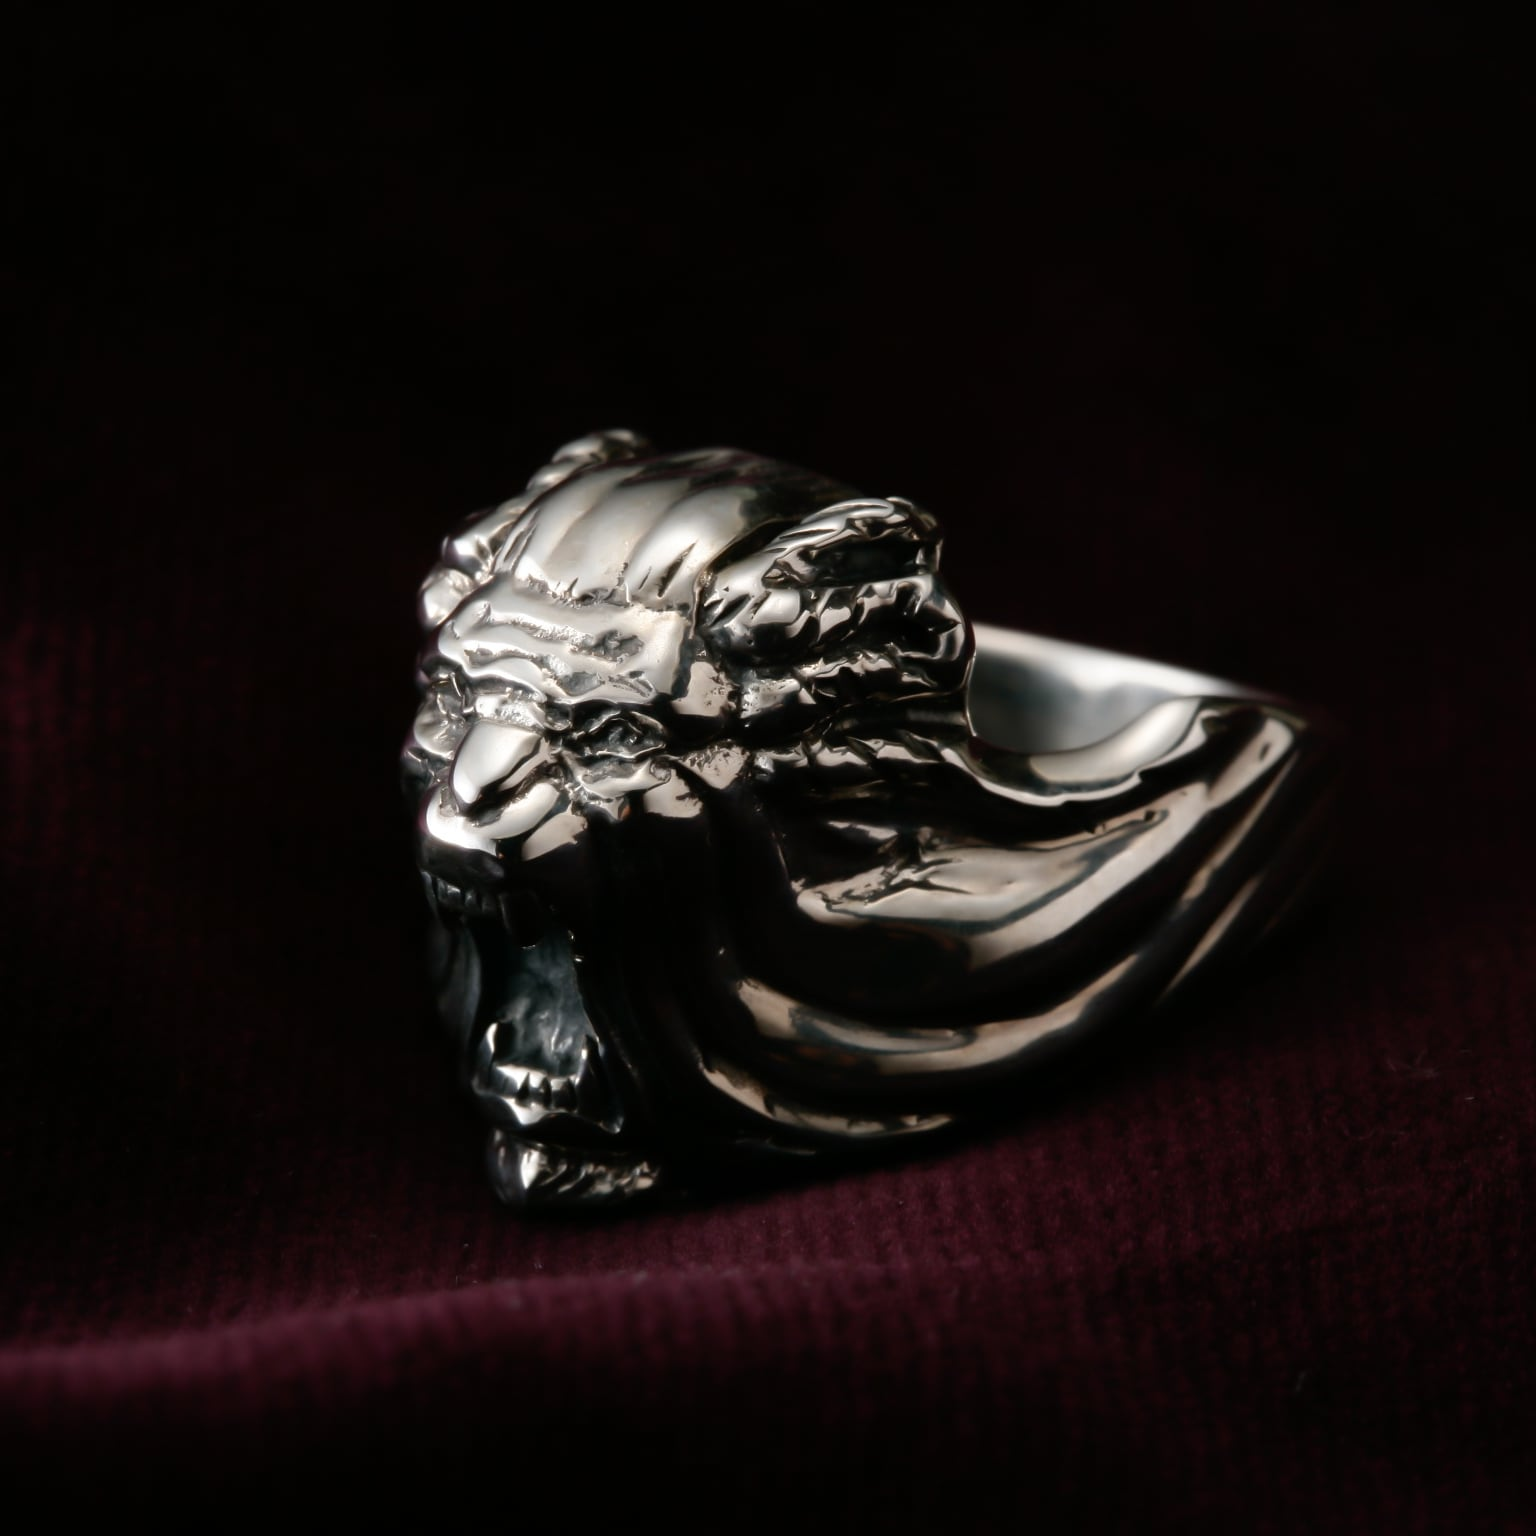 Bow of a pirate boat Ring